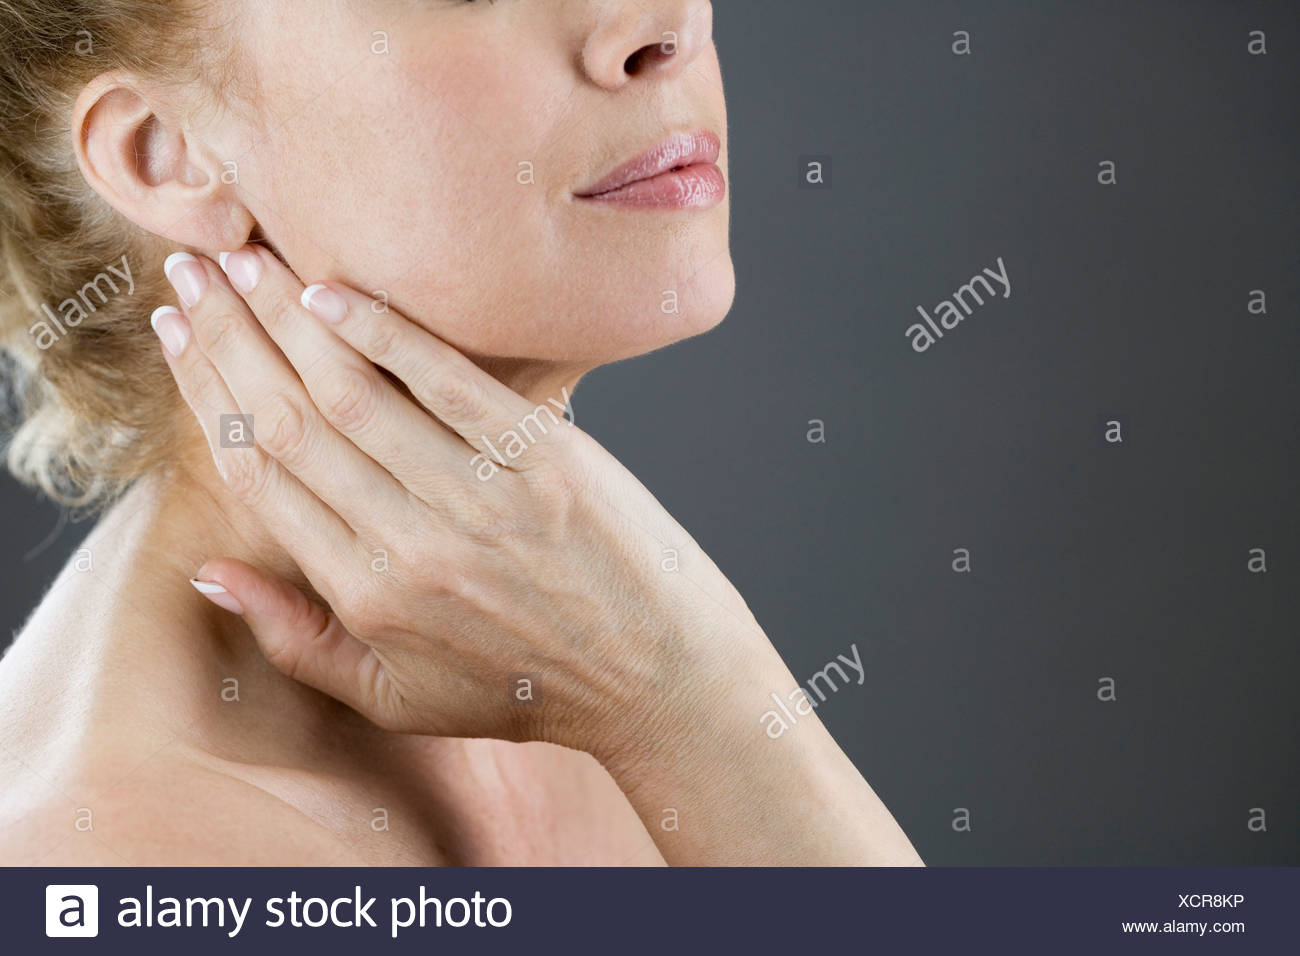 A woman touching her neck - Stock Image